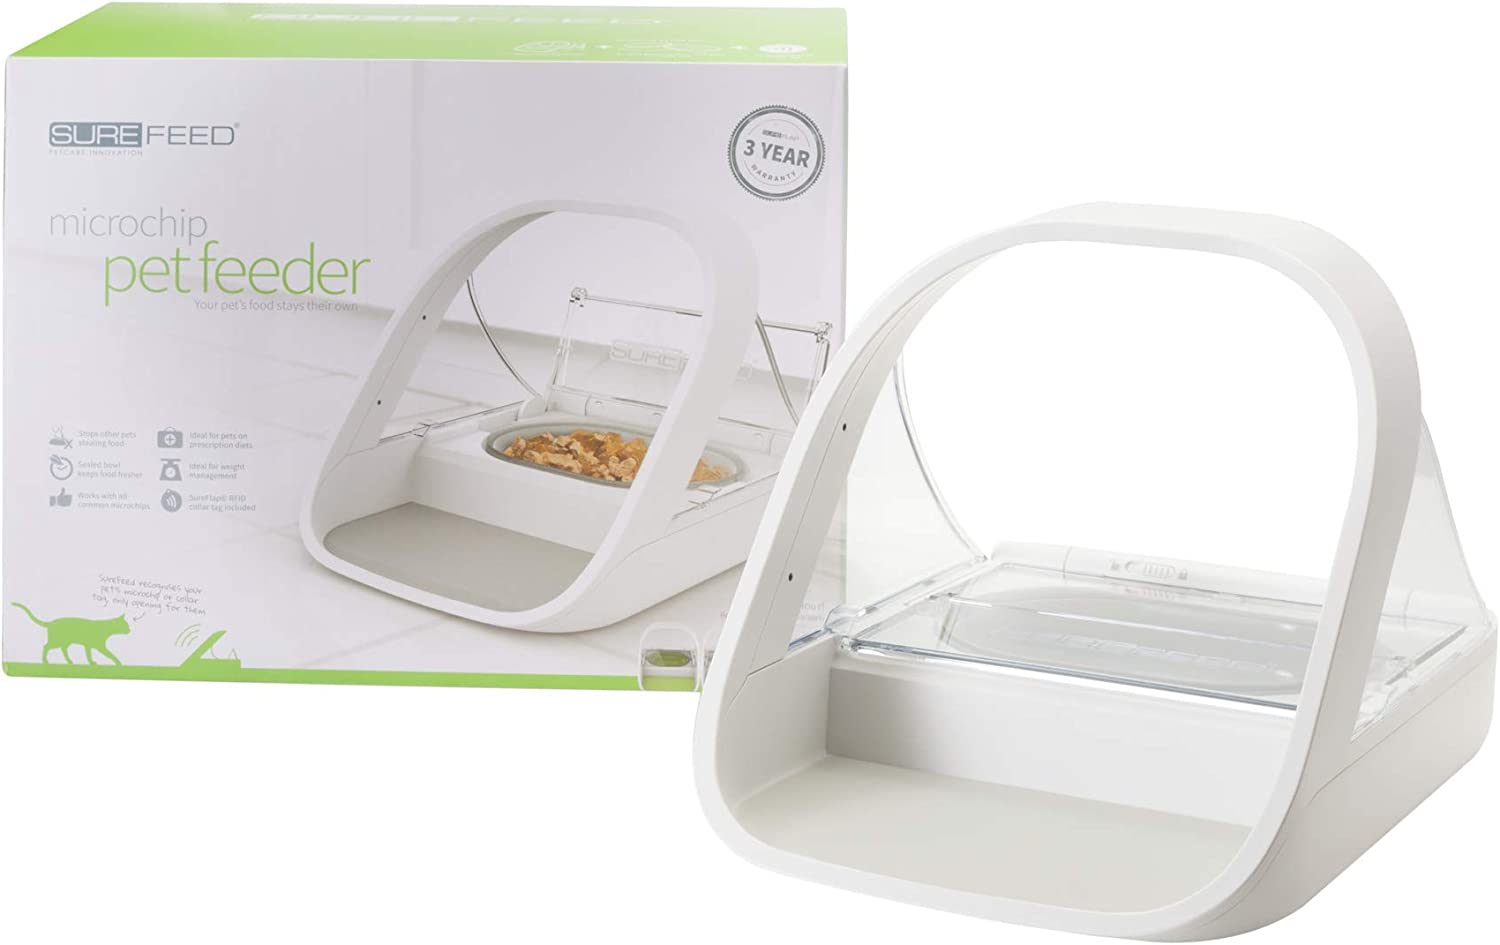 61ciFN2qszL. AC SL1500 - Best automatic feeder for cat: 12 products reviewed